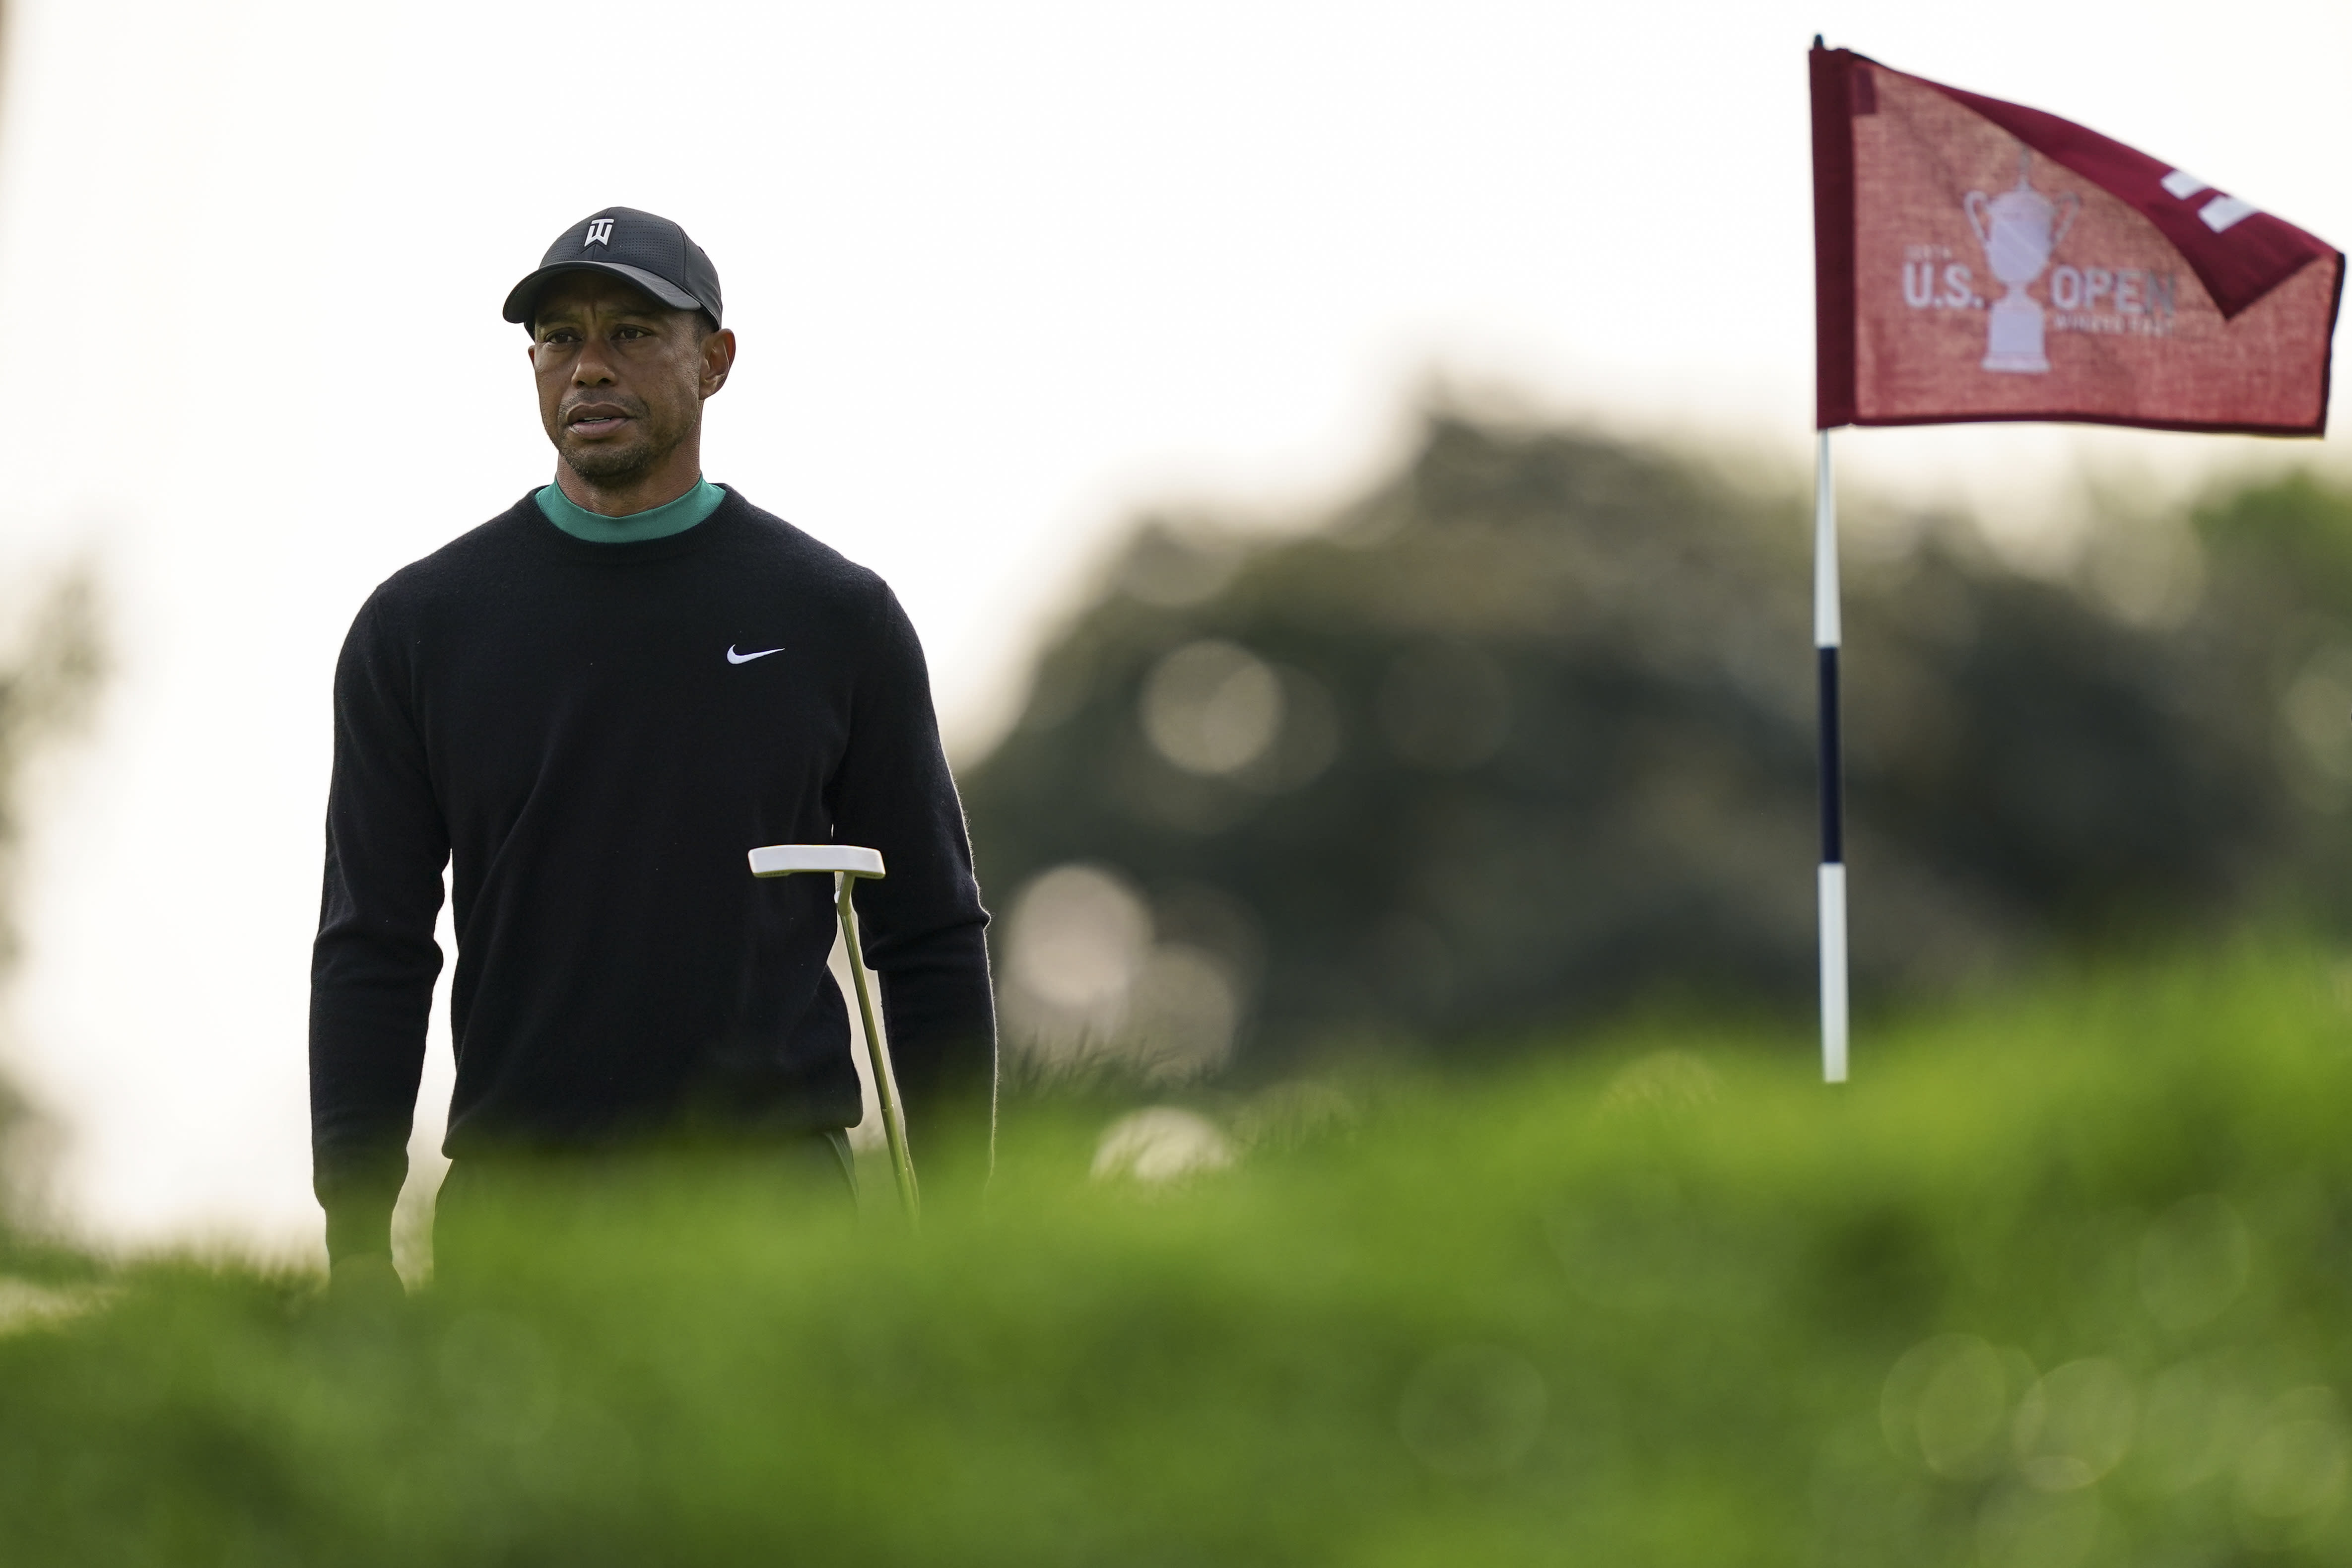 Tiger Woods walks the 11th green during practice before the U.S. Open Championship golf tournament at Winged Foot Golf Club, Tuesday, Sept. 15, 2020, in Mamaroneck, N.Y. (AP Photo/John Minchillo)